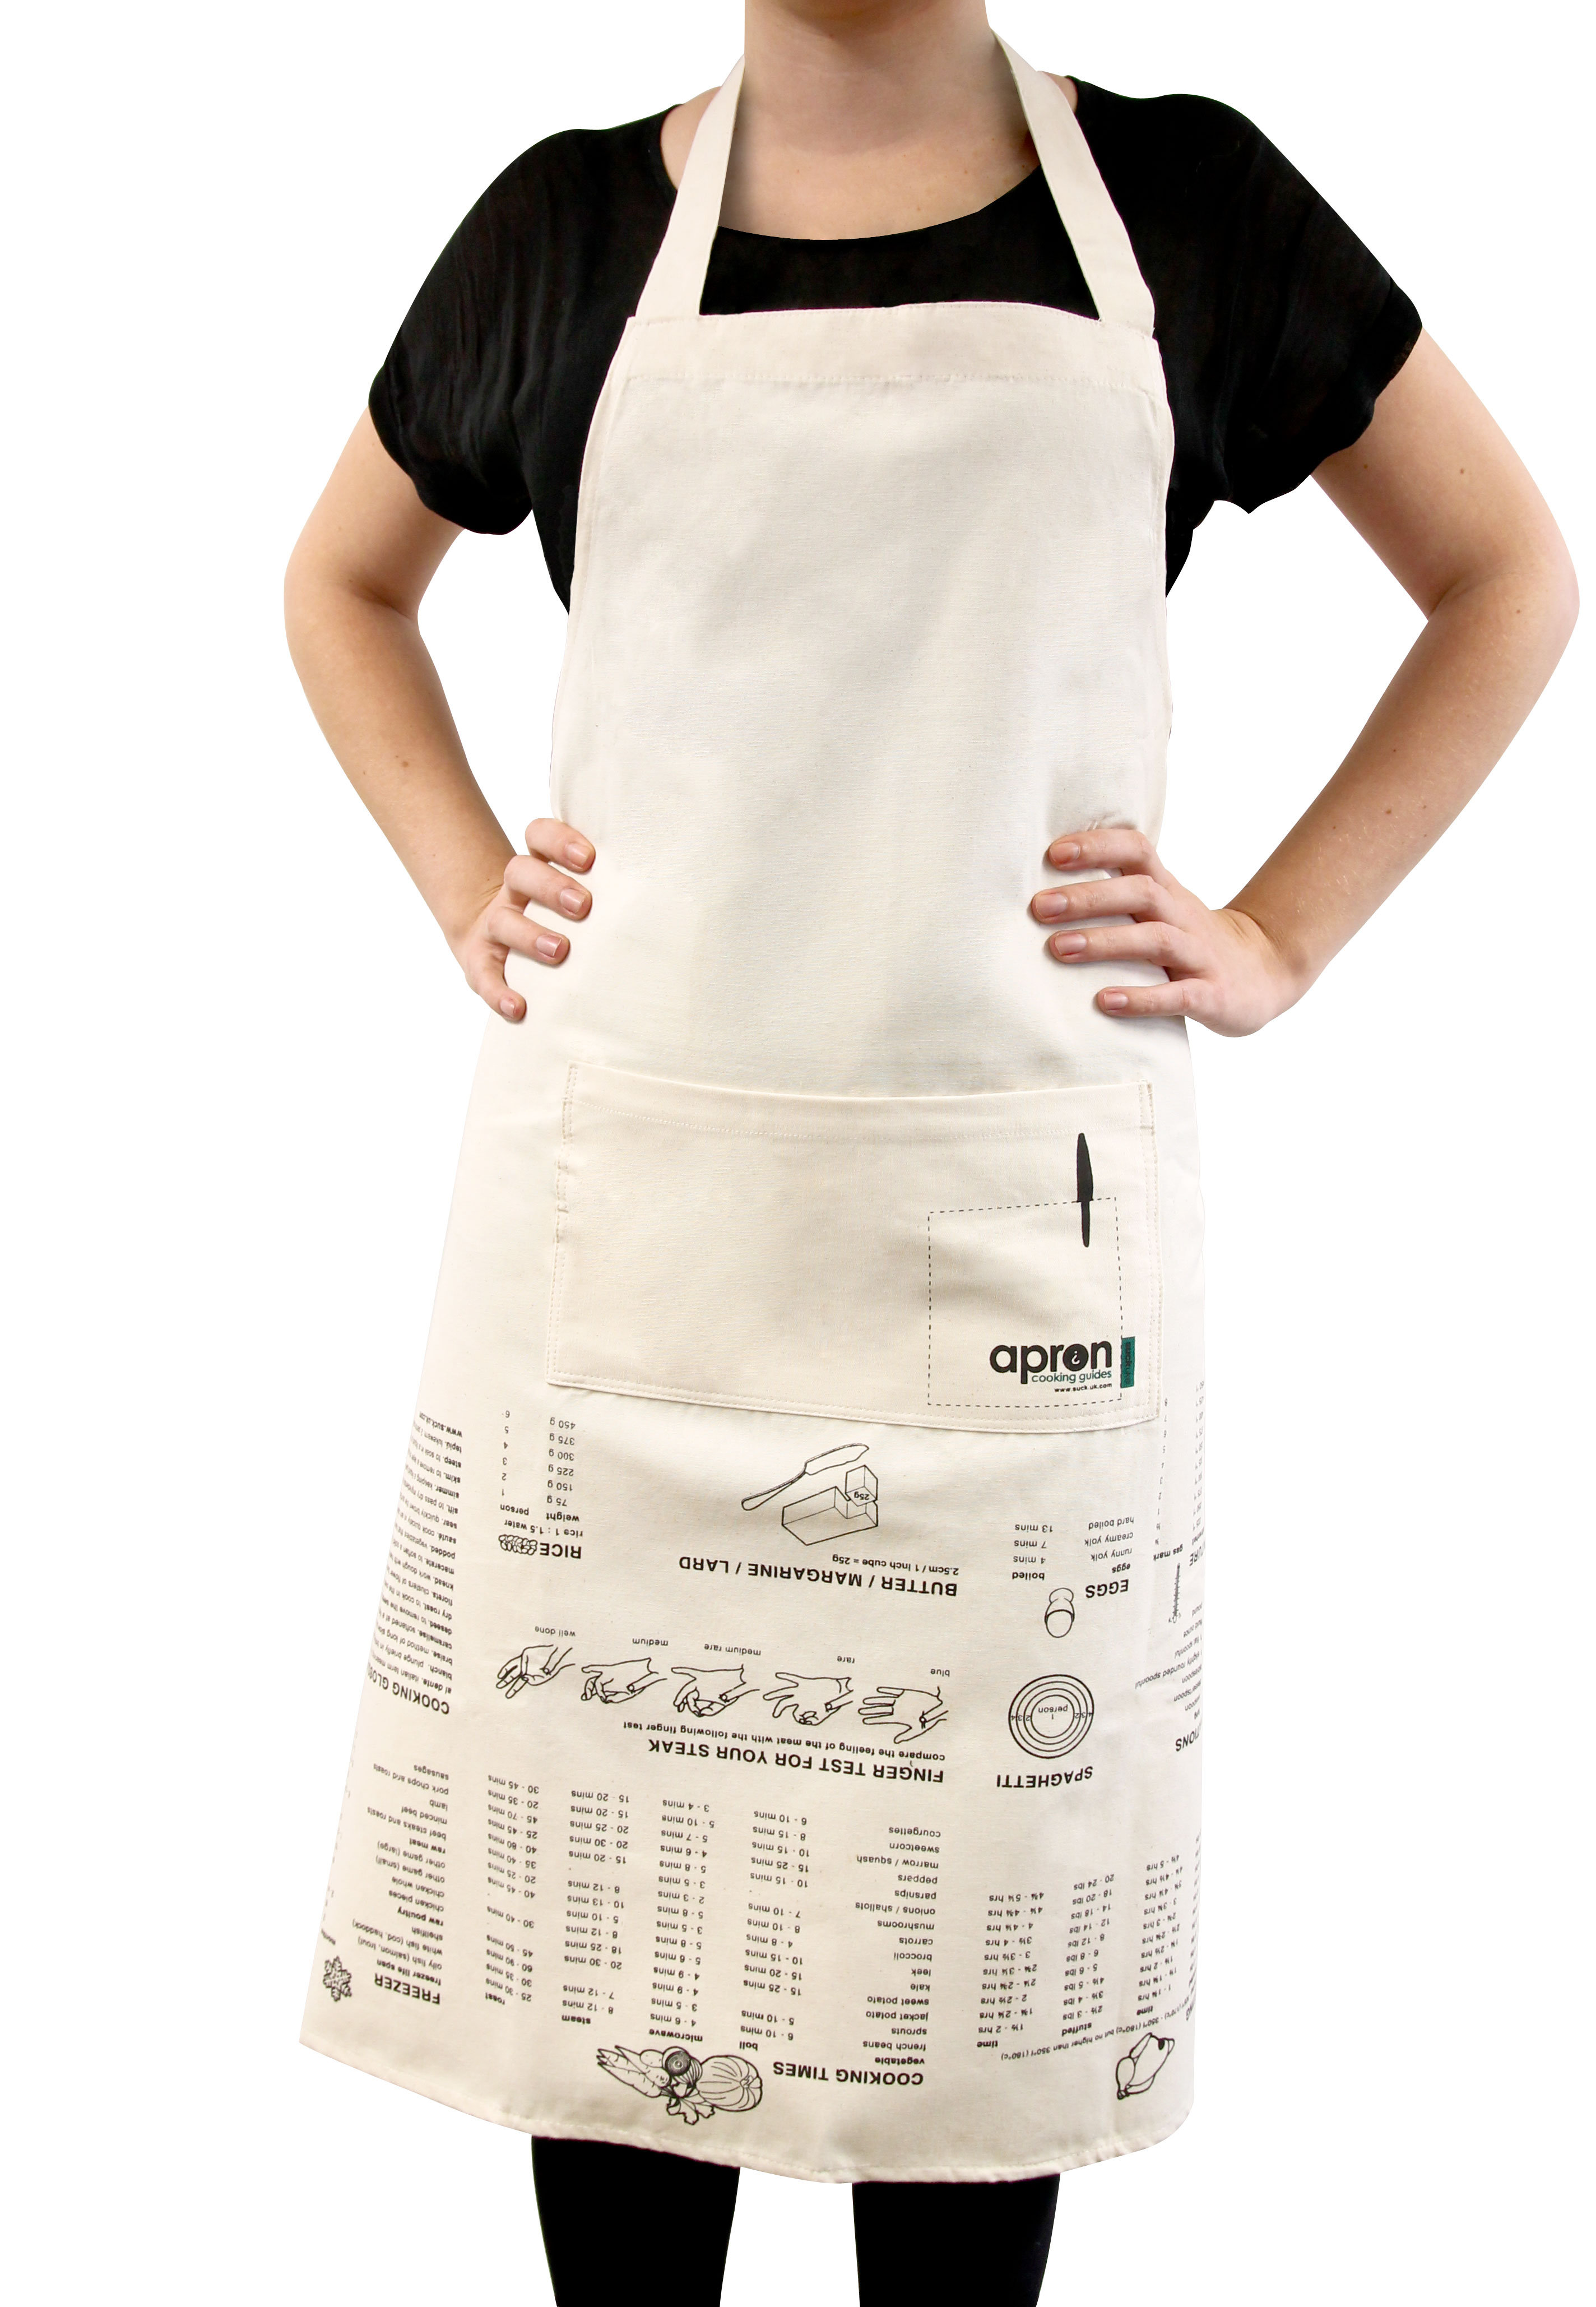 The white apron english translation